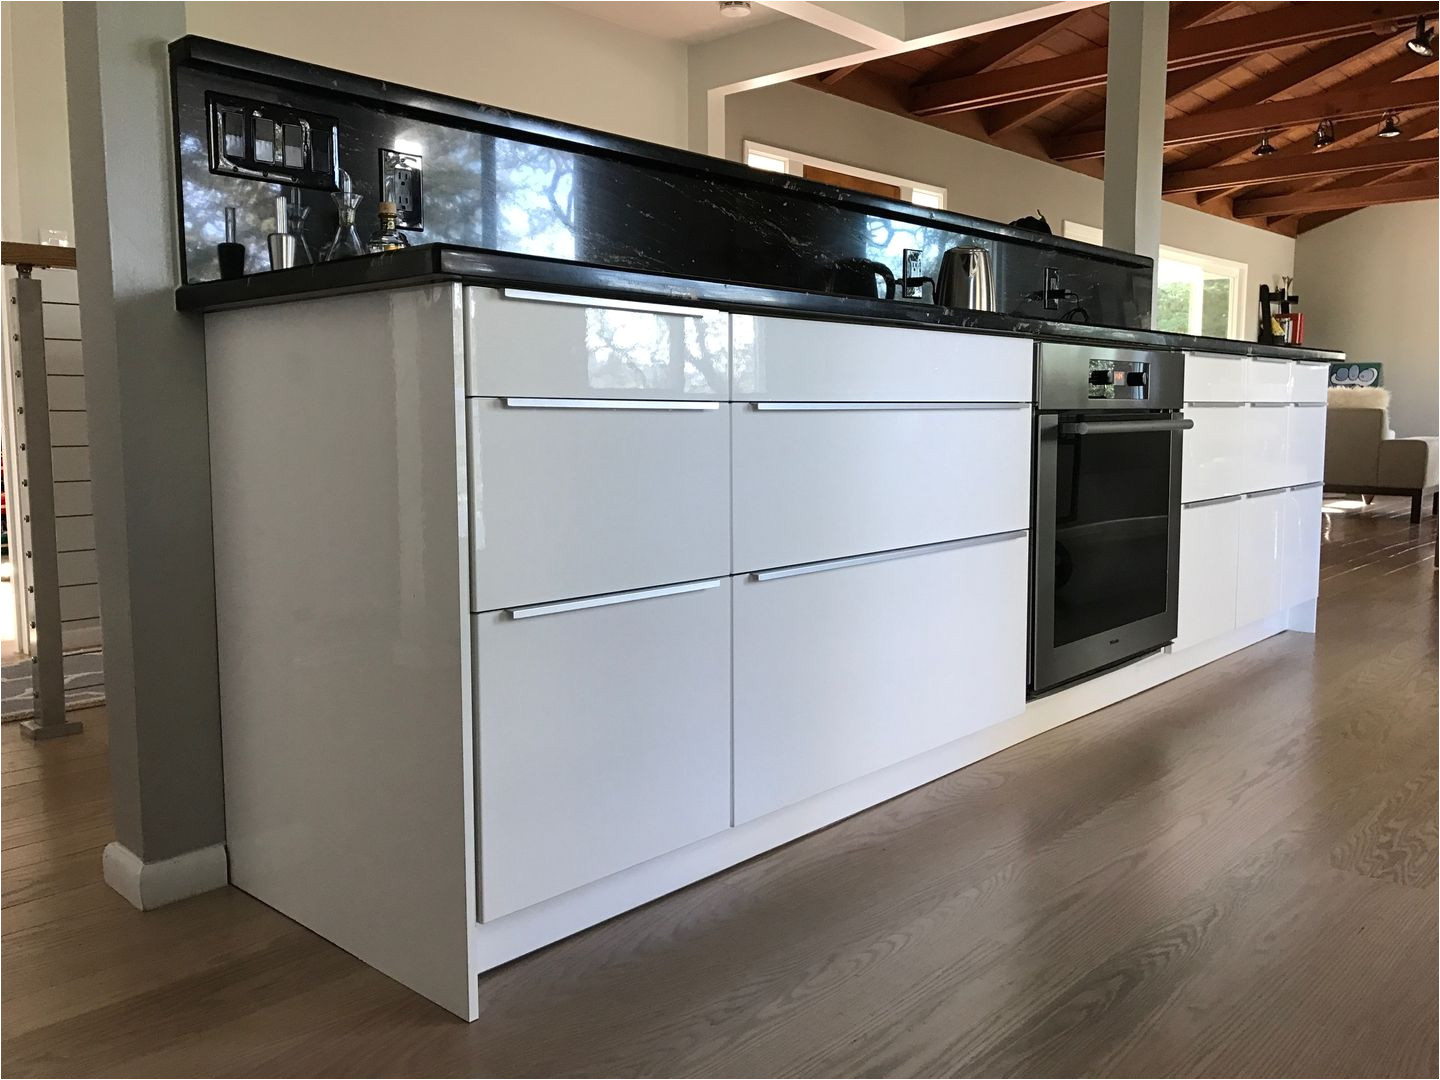 finished and completed ikea kitchen sektion cabinets ringhult white high gloss fronts with blankett handles follow us on instagram for more pictures